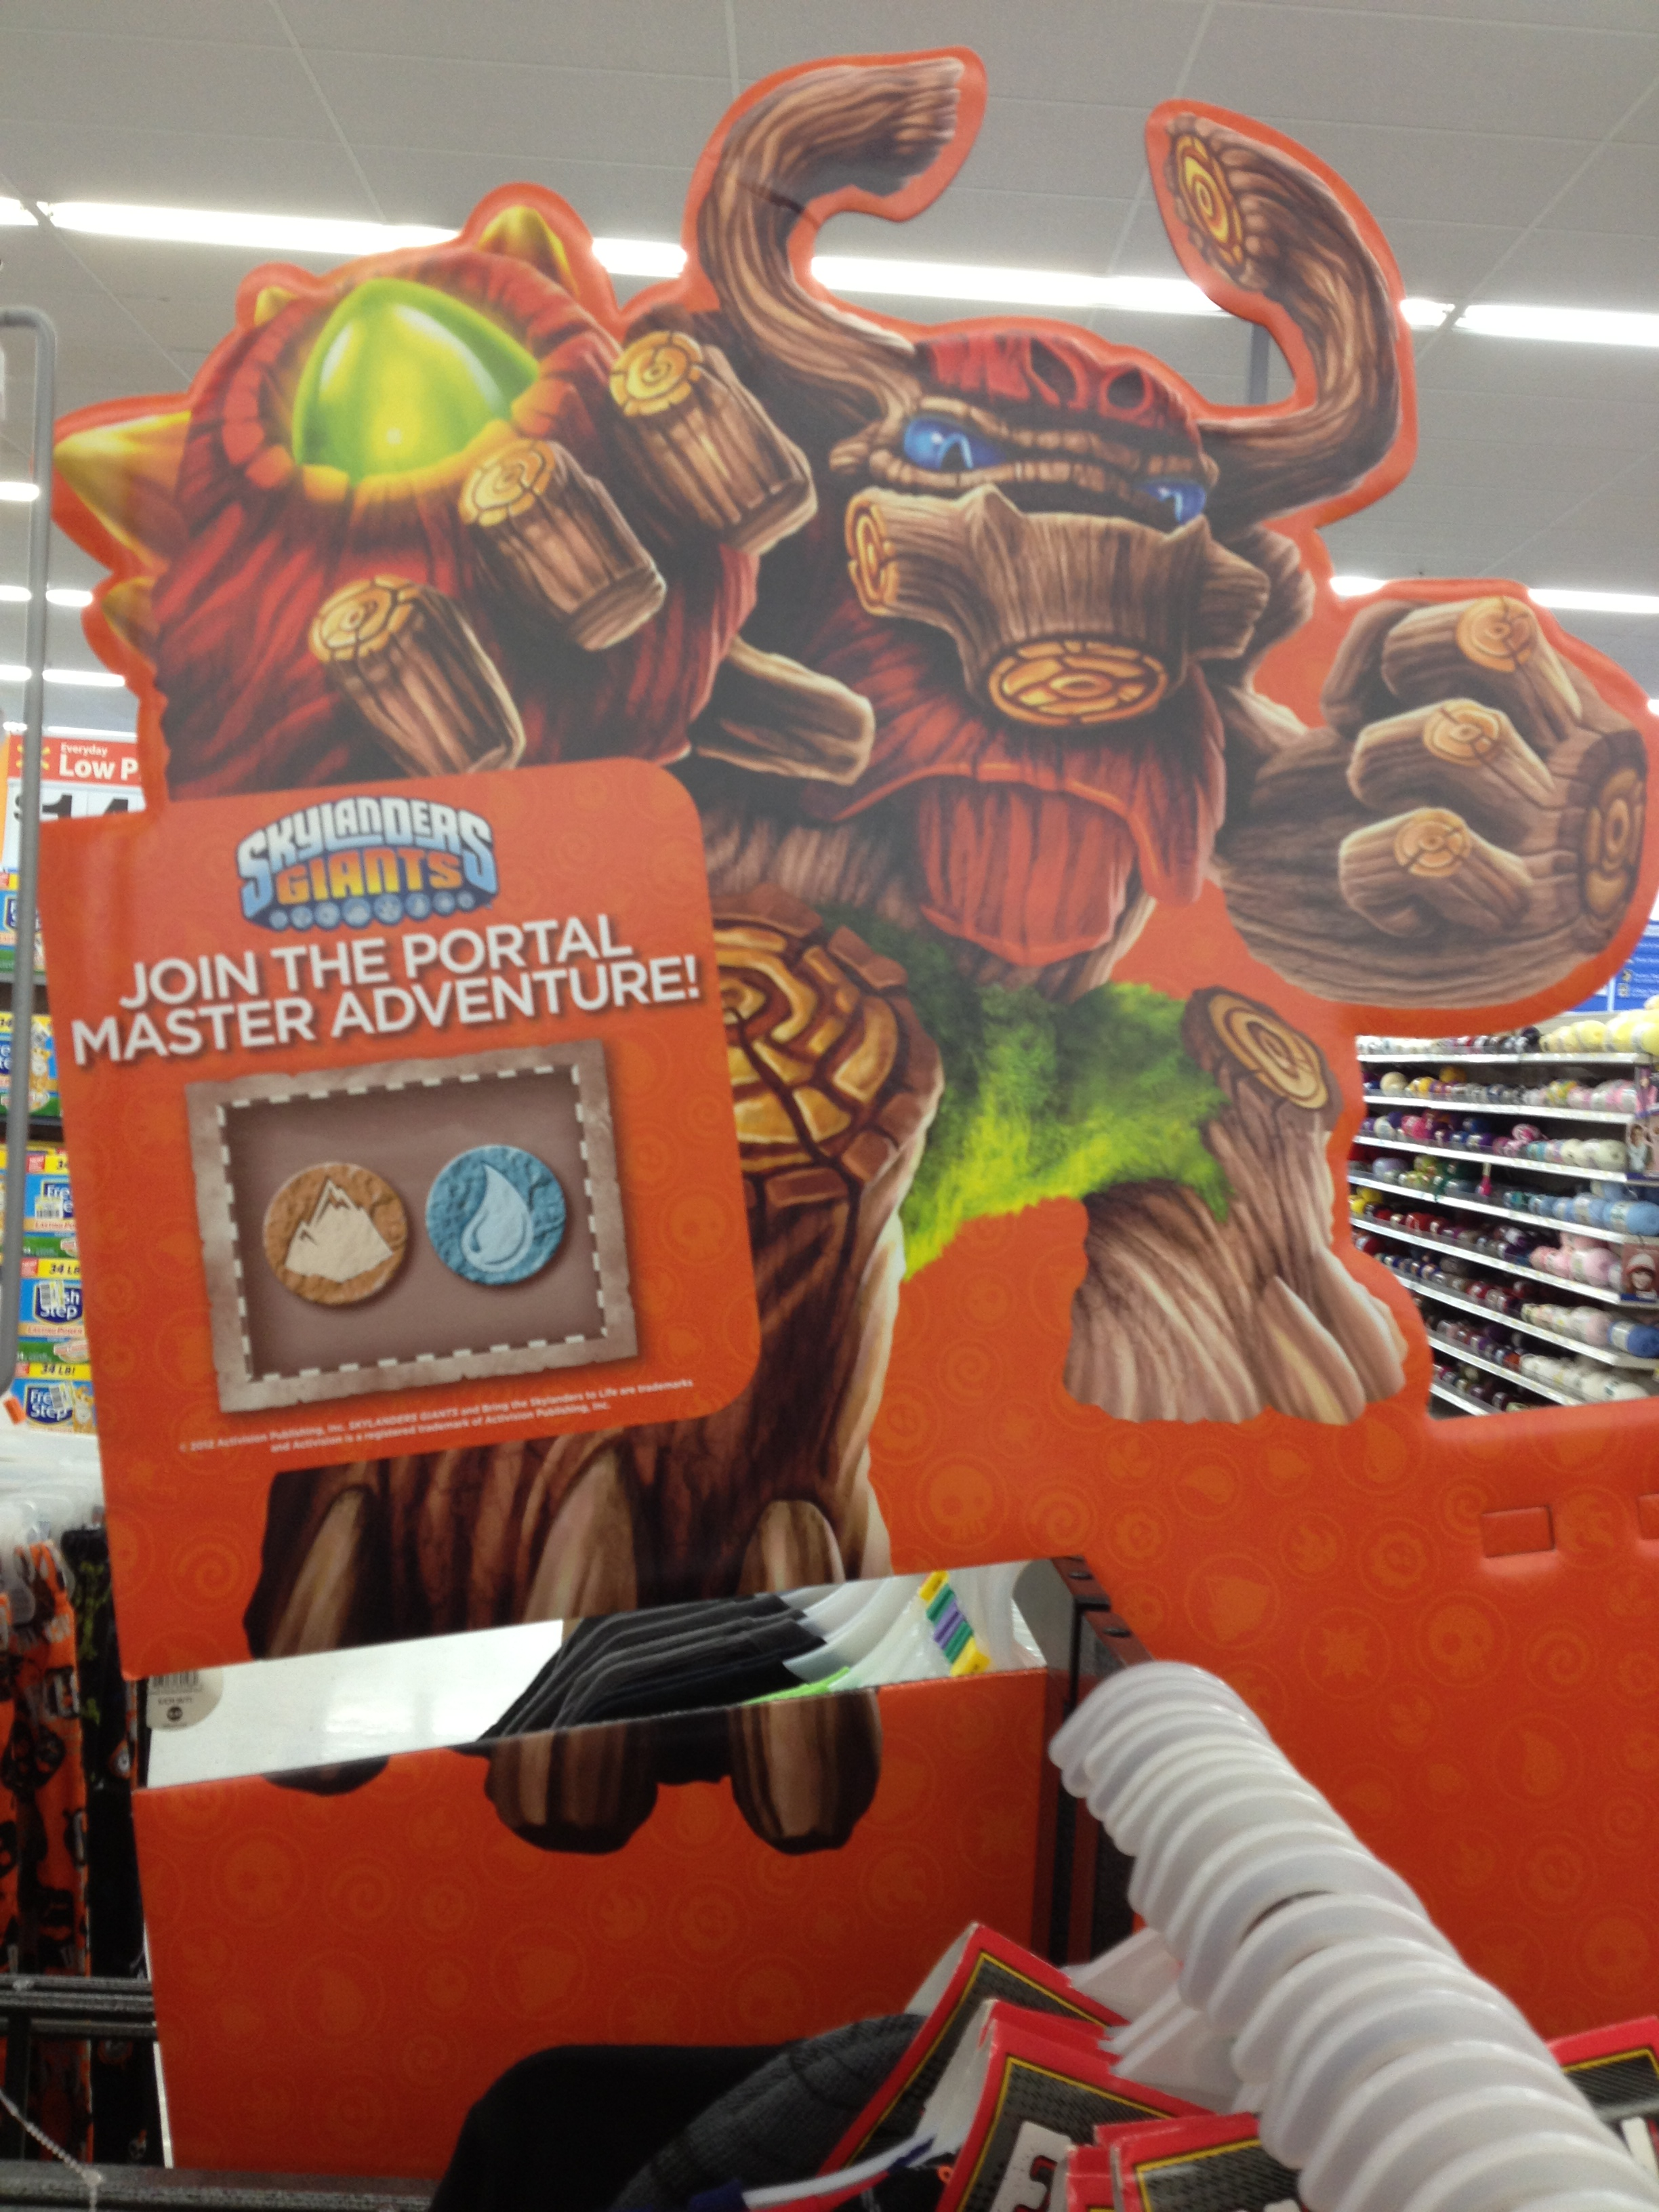 Walmart is Ready for Skylanders Sunday